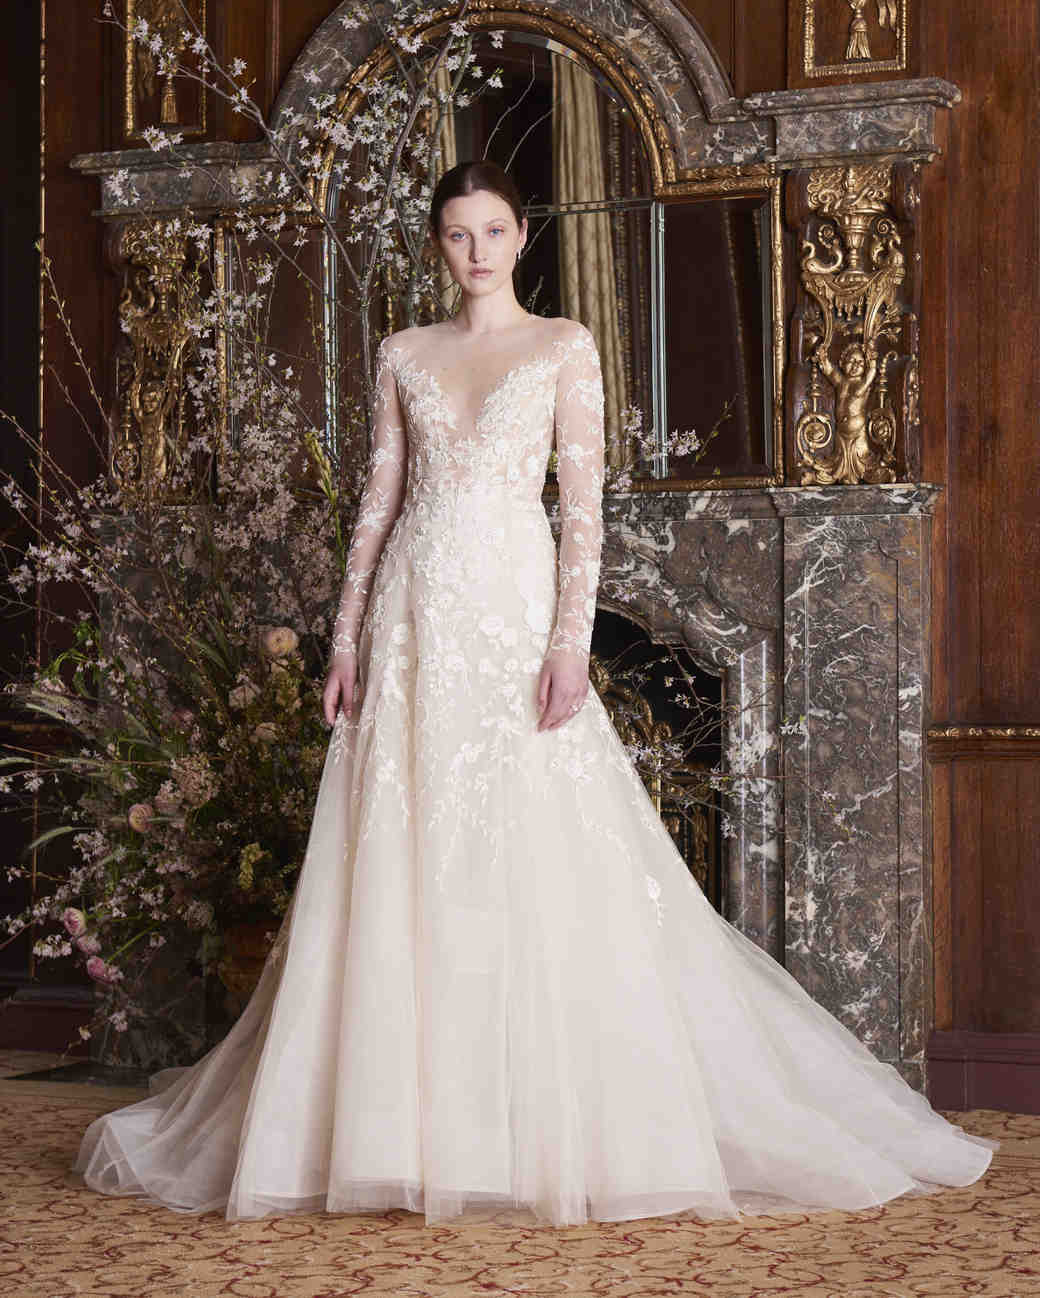 monique lhuillier wedding dress spring 2019 long sleeve lace